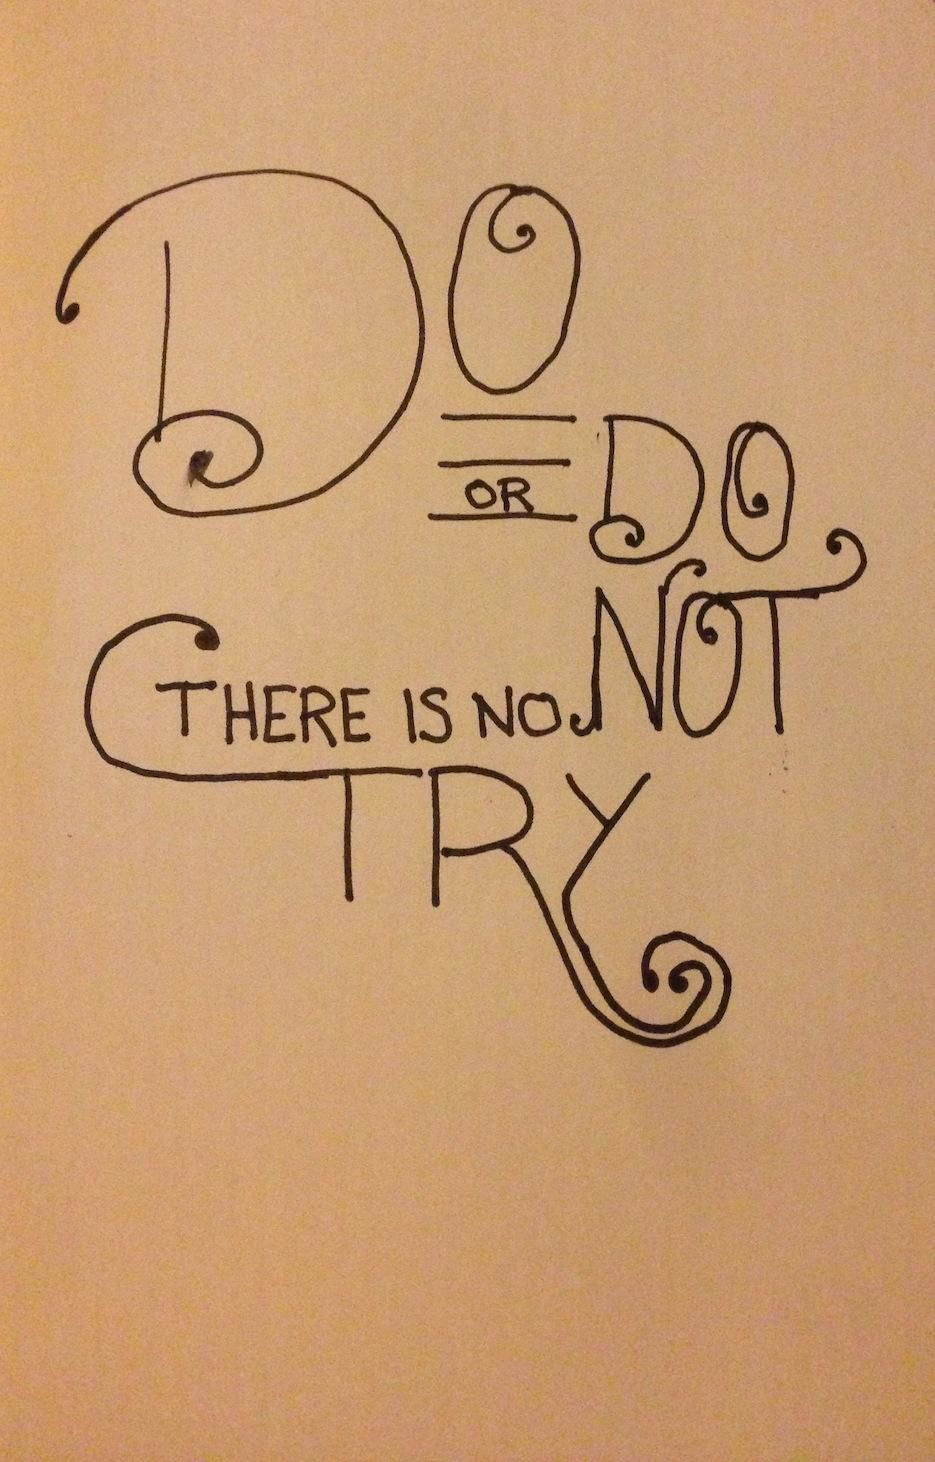 Do or do not, there is no try. - image 12 - student project